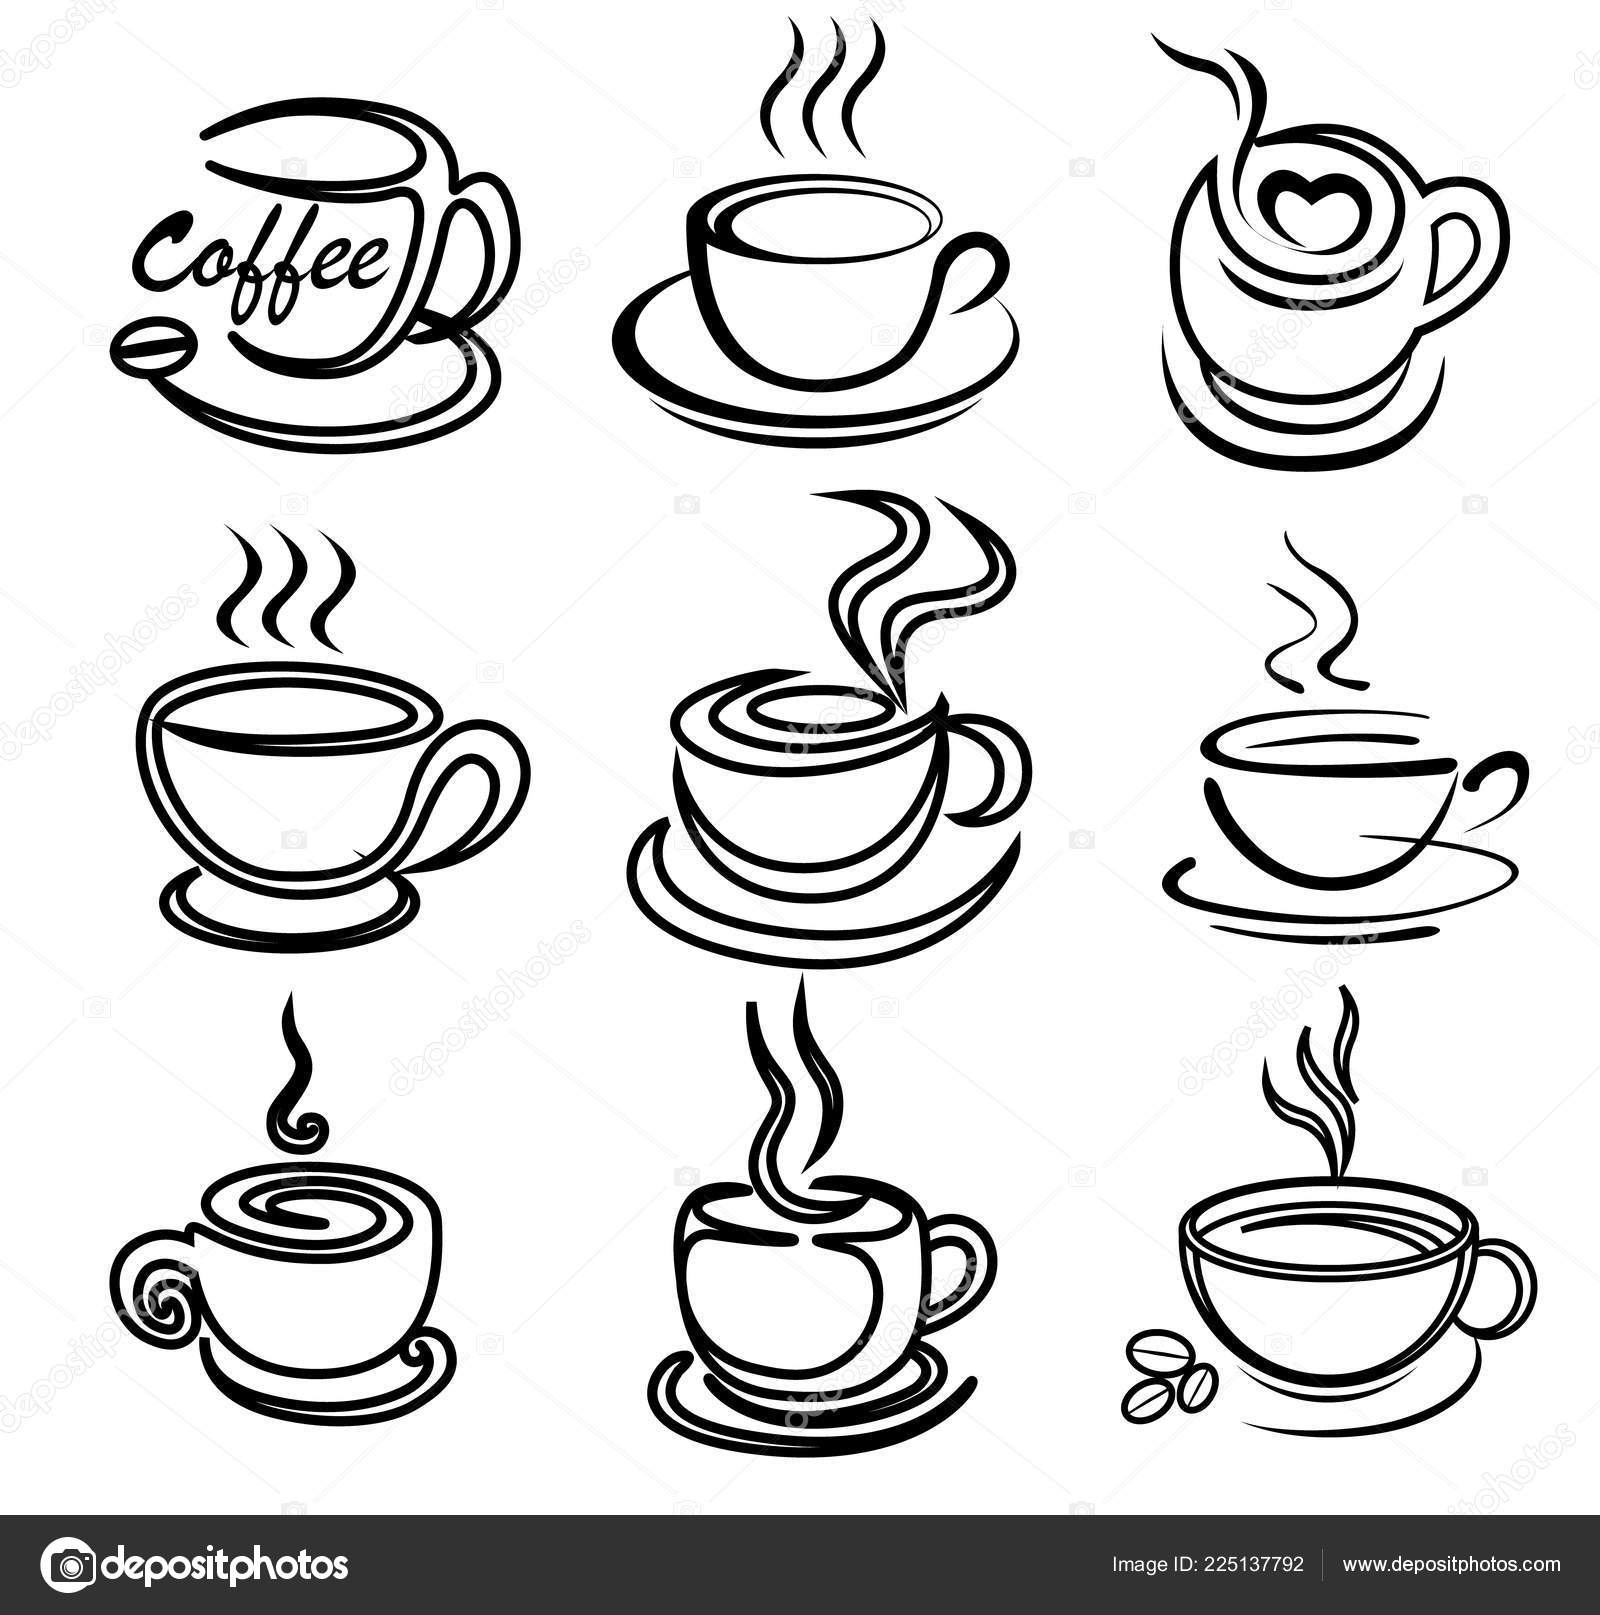 coffee cup drawings coffee cup line drawing at getdrawings free download cup coffee drawings